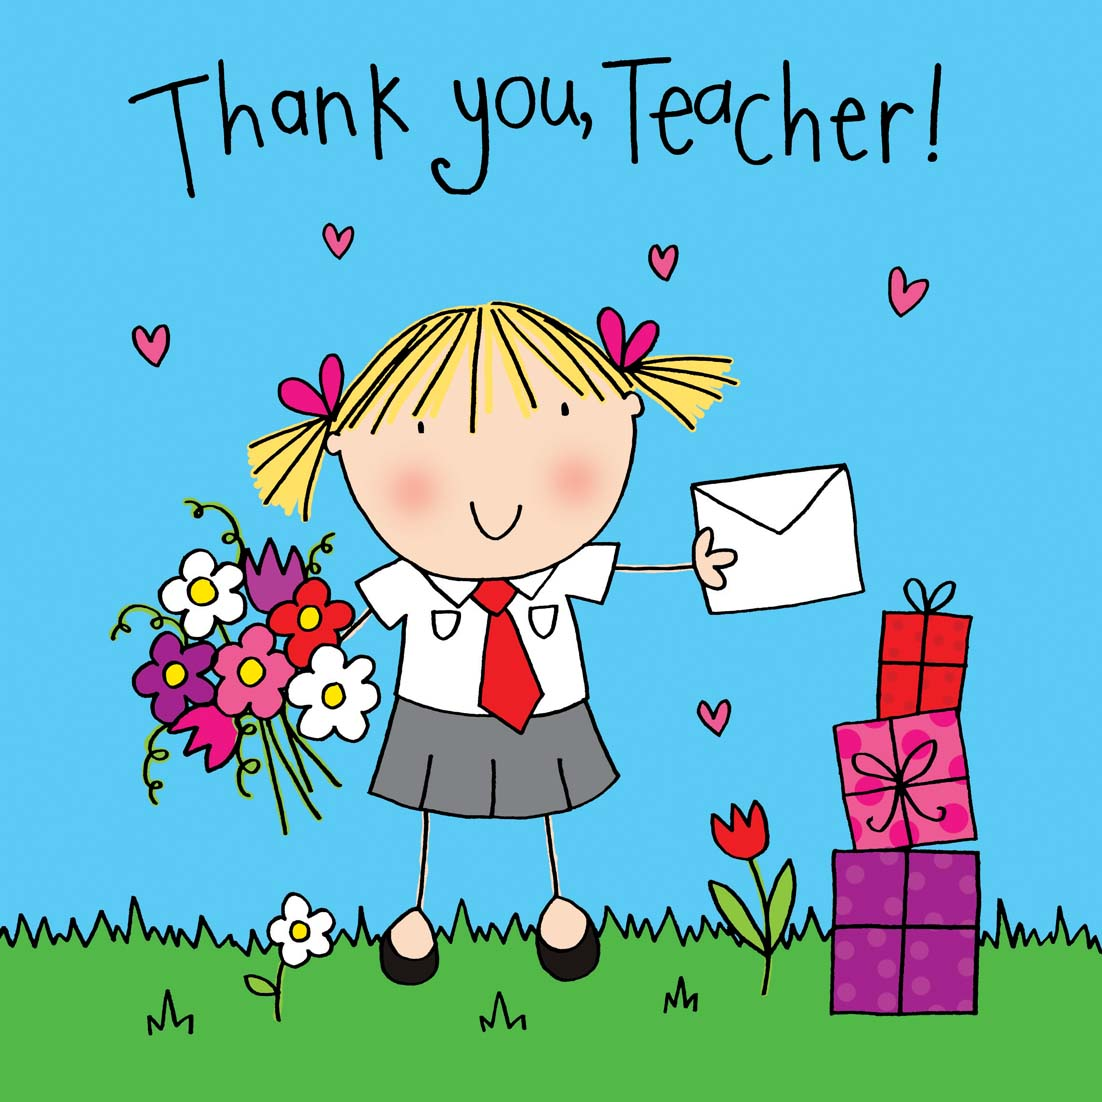 Act of kindness #22: Thank you, Teacher!